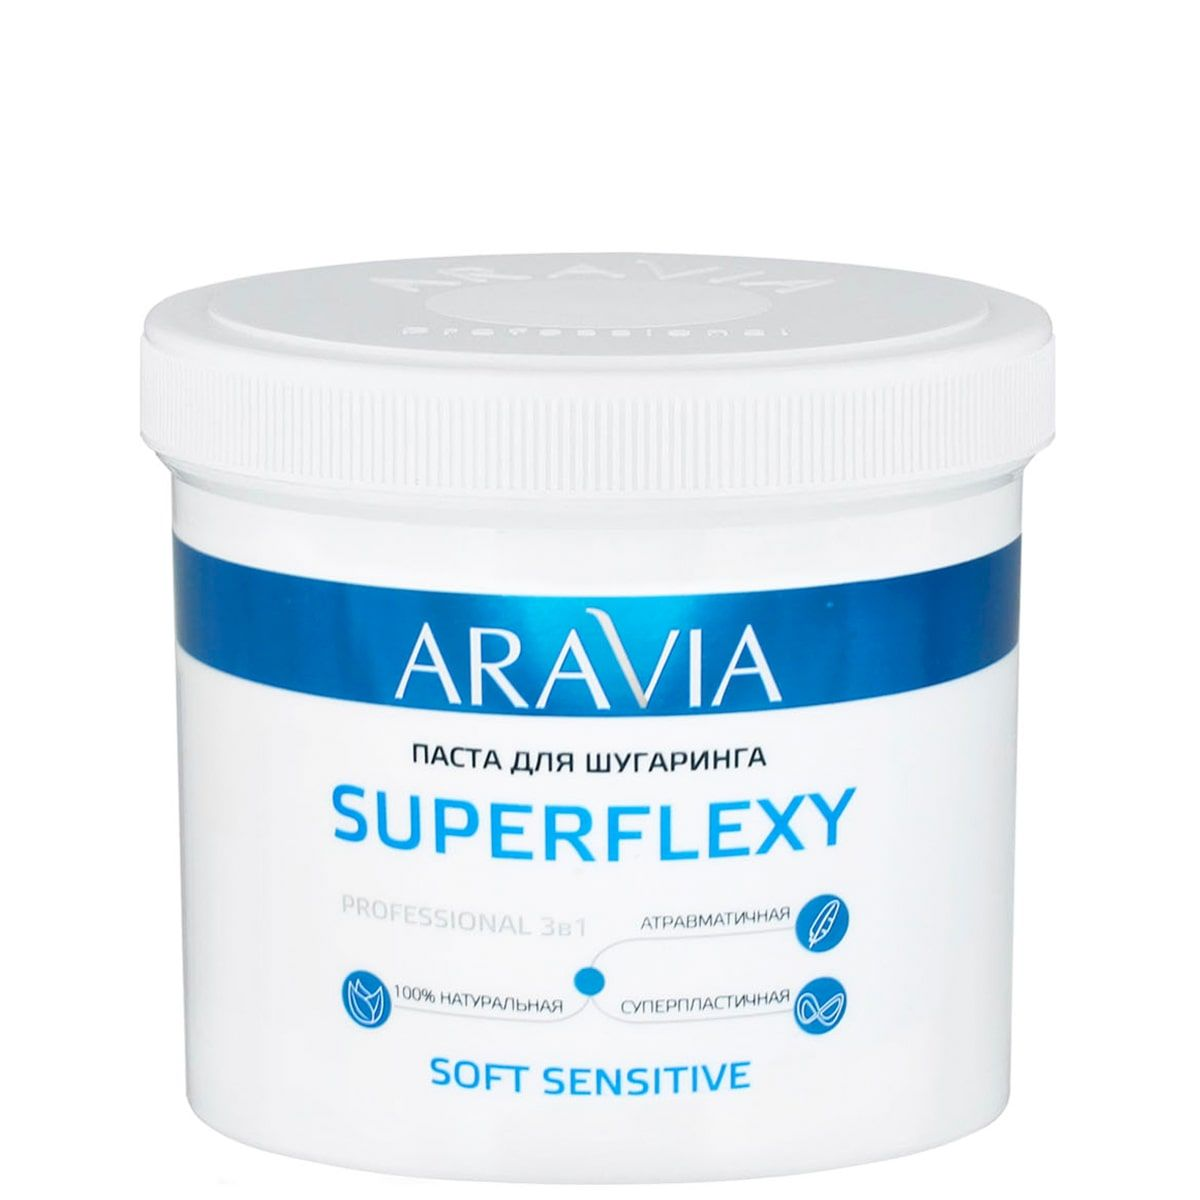 ARAVIA Professional, Сахарная паста Superflexy Soft Sensitive, 750 г